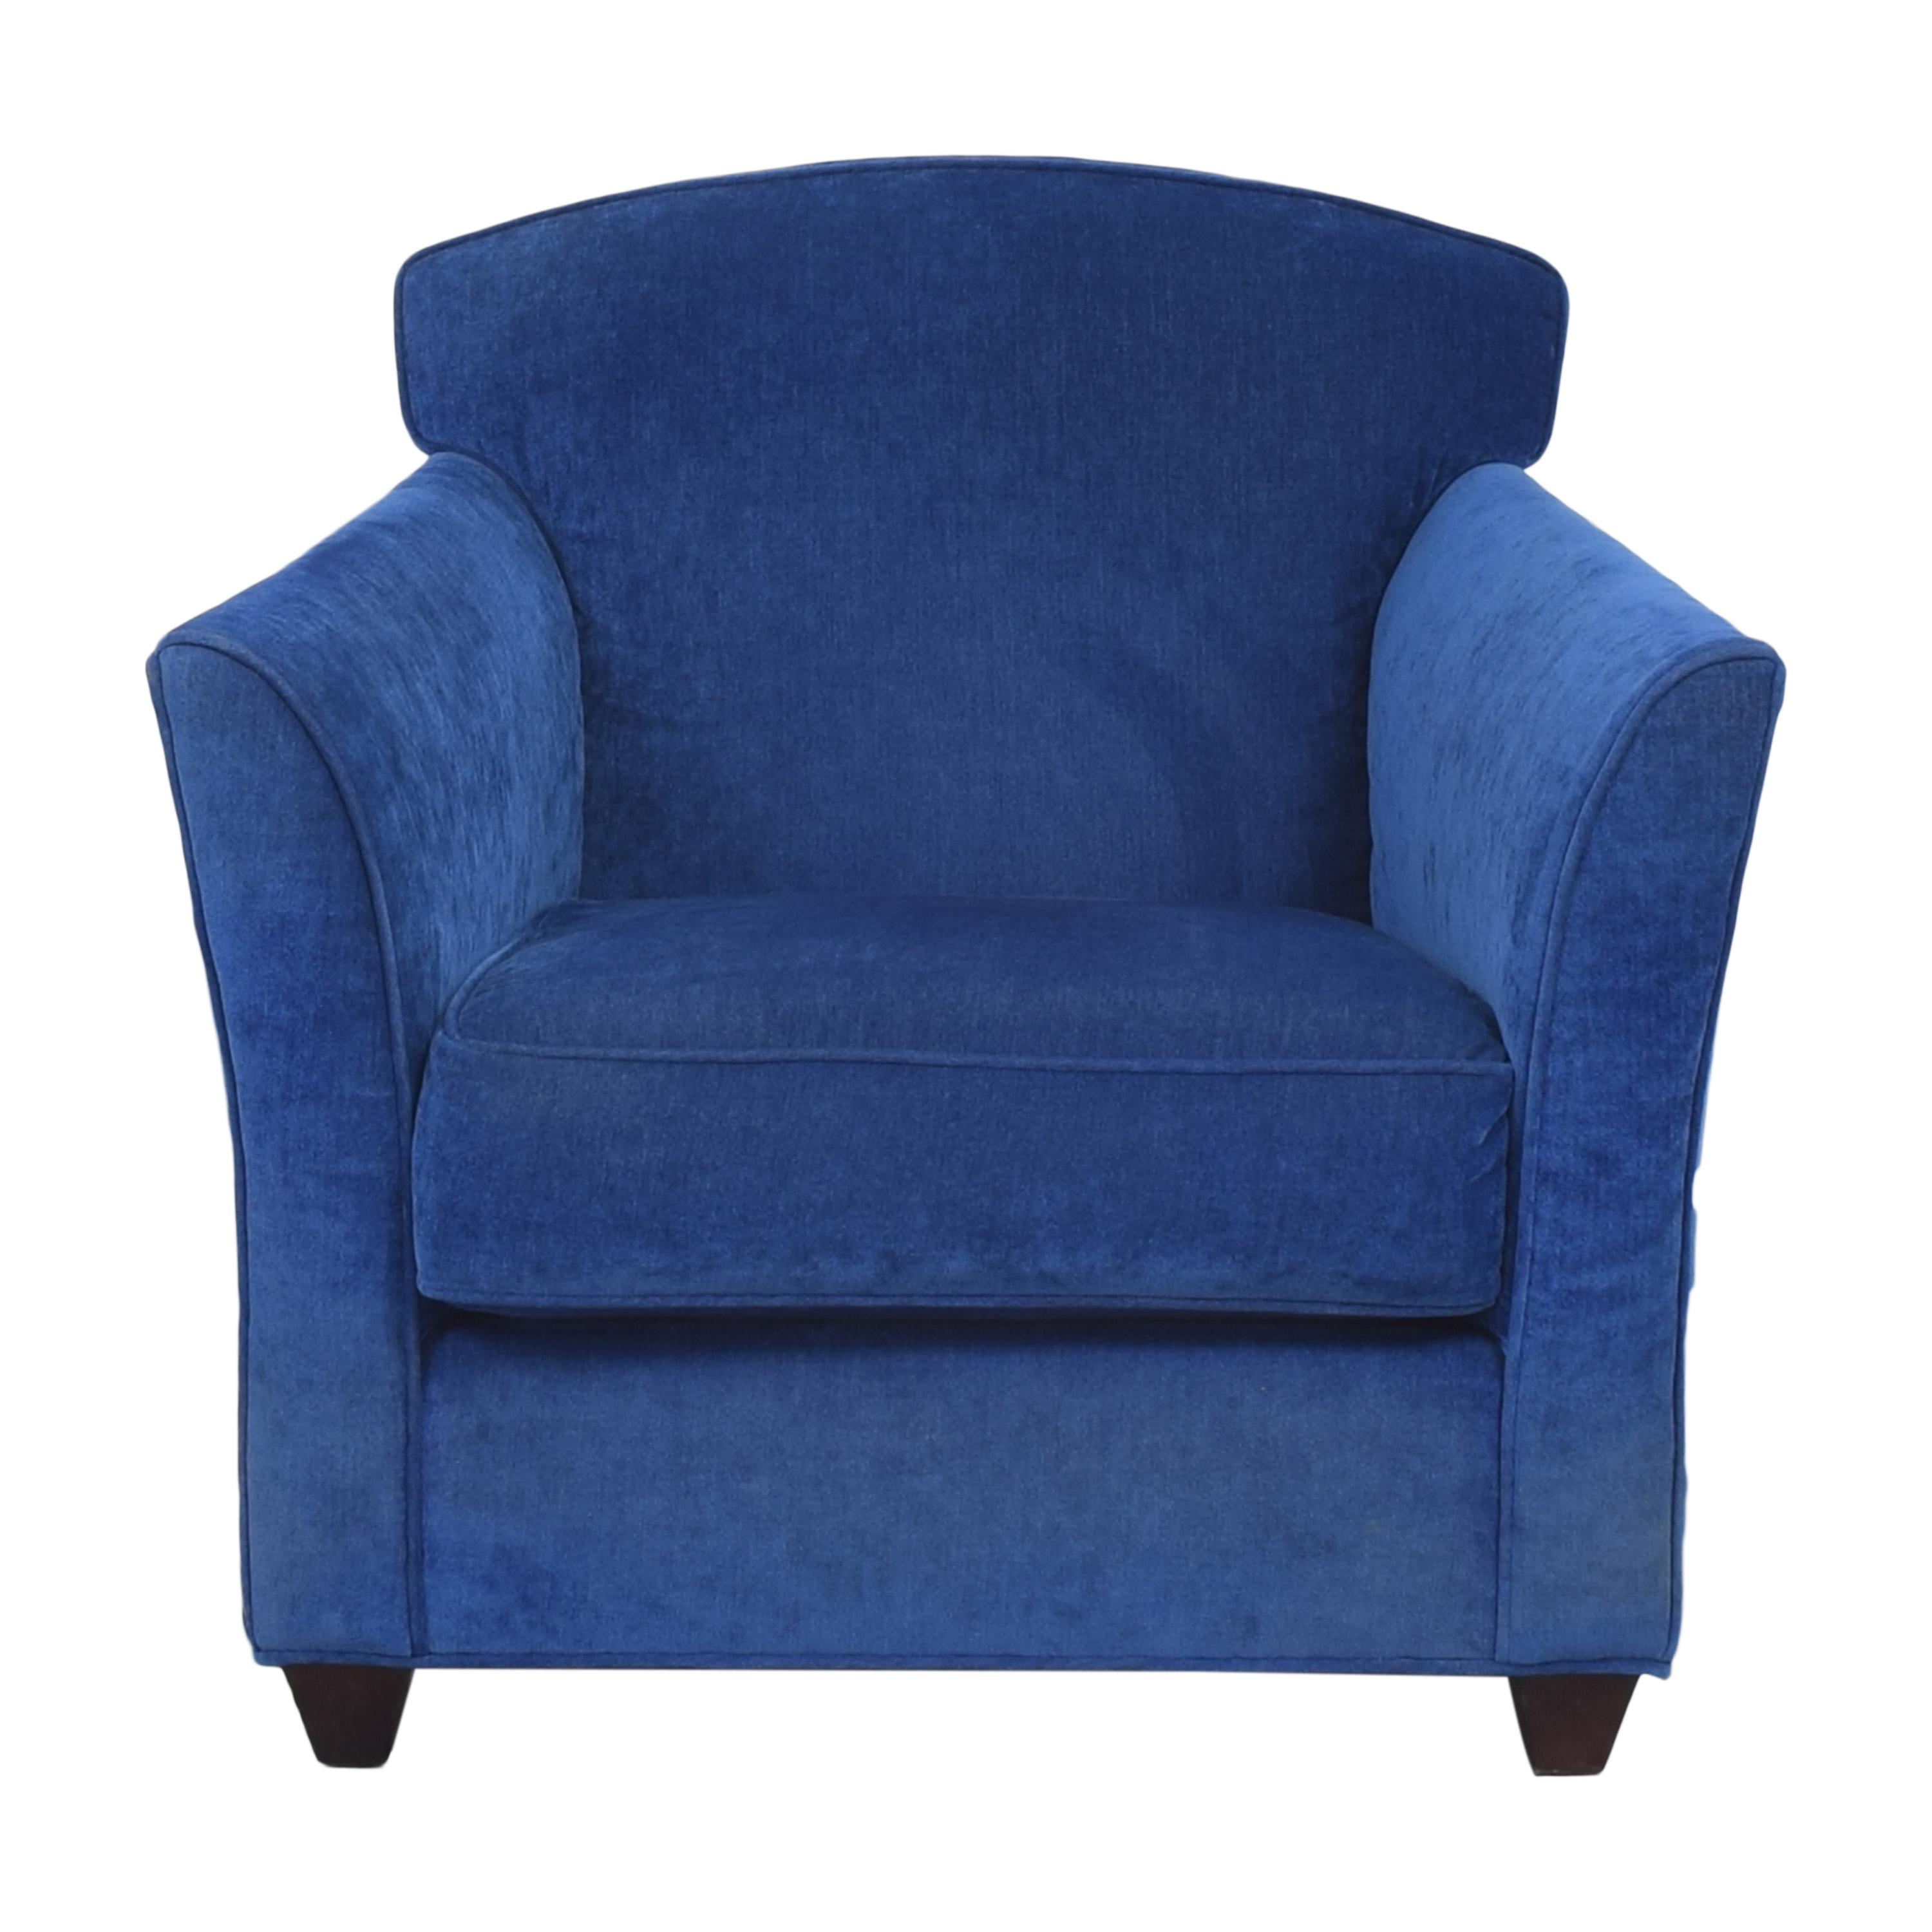 Upholstered Accent Armchair discount